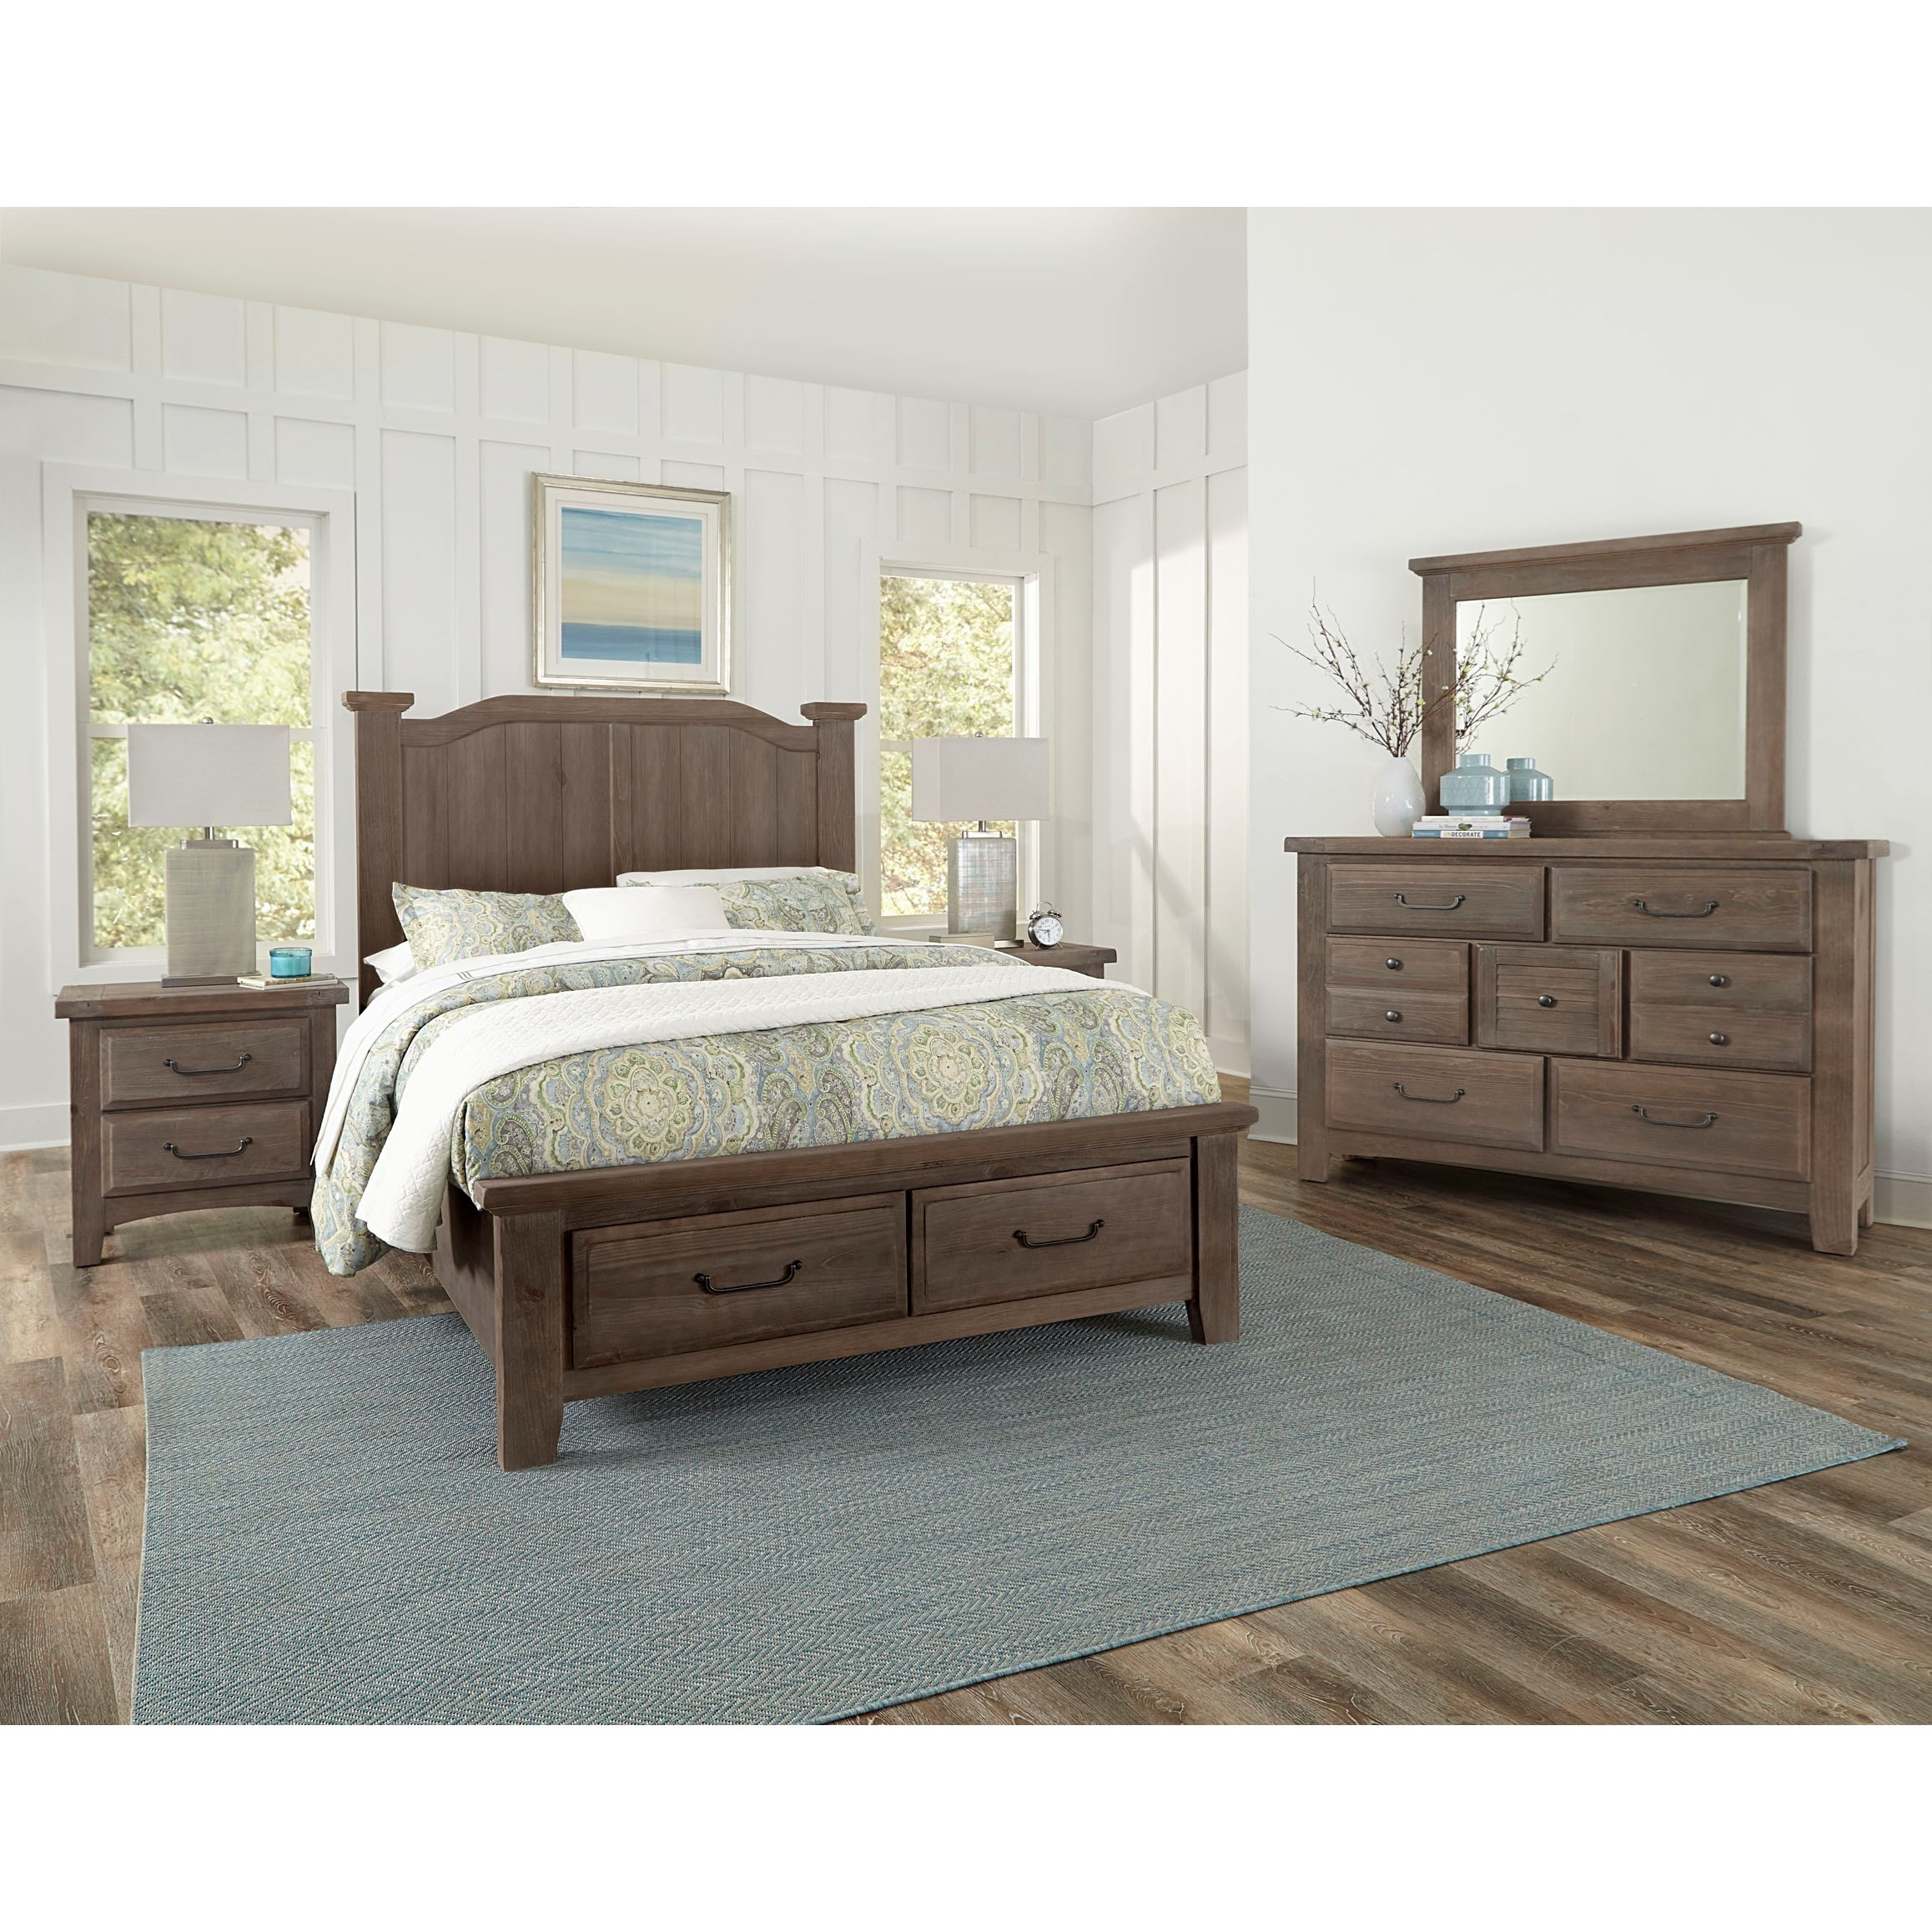 Sawmill King Bedroom Group by Vaughan Bassett at Northeast Factory Direct